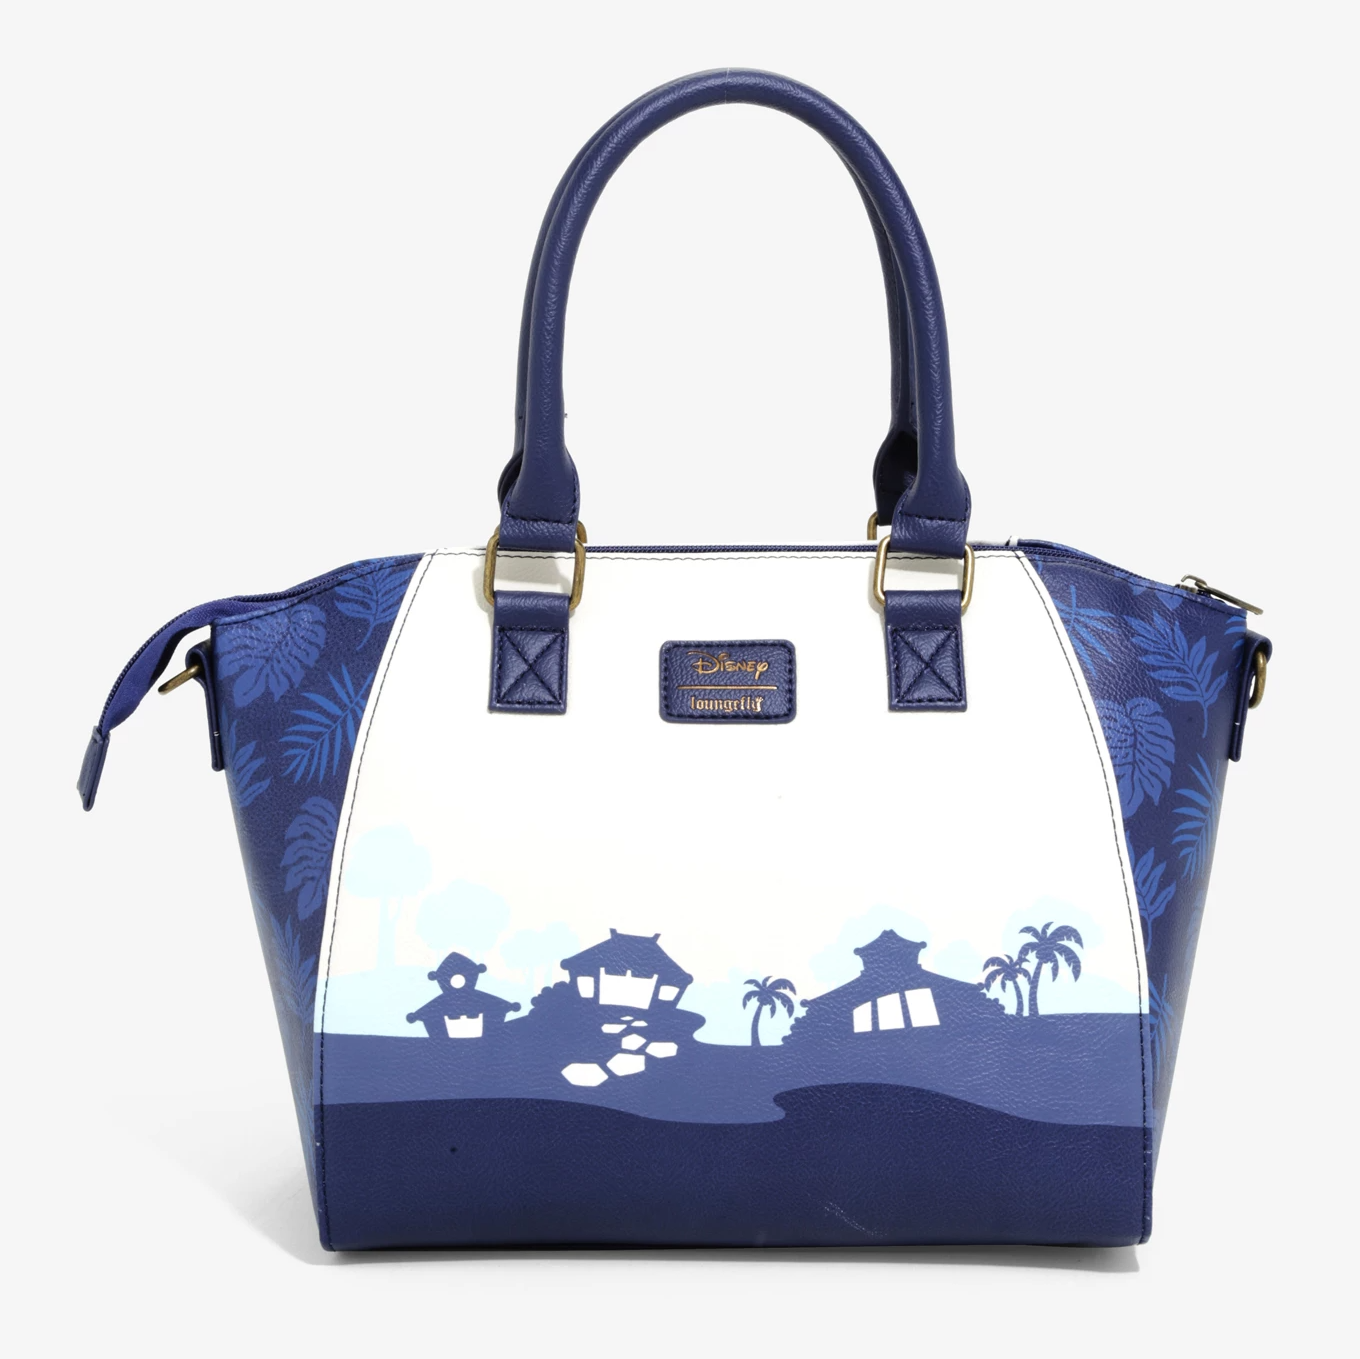 LOUNGEFLY DISNEY LILO & STITCH DARK BLUE SATCHEL BAG